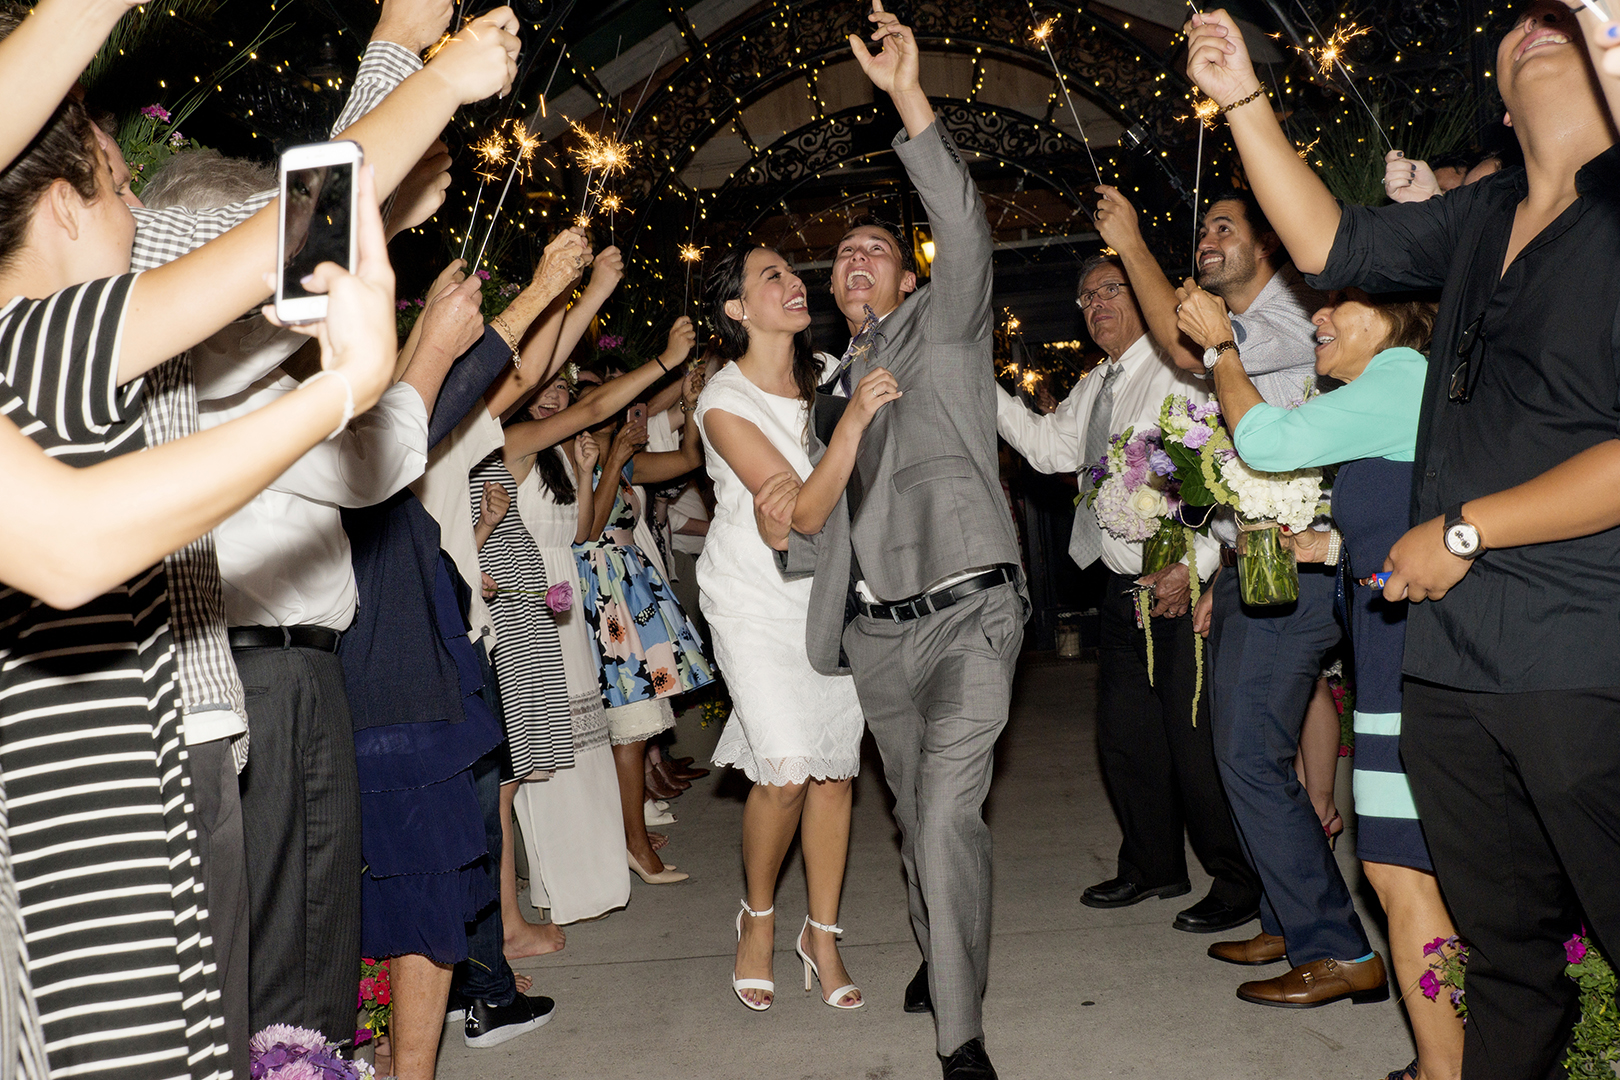 Excited Wedding Couple Exits to sparklers